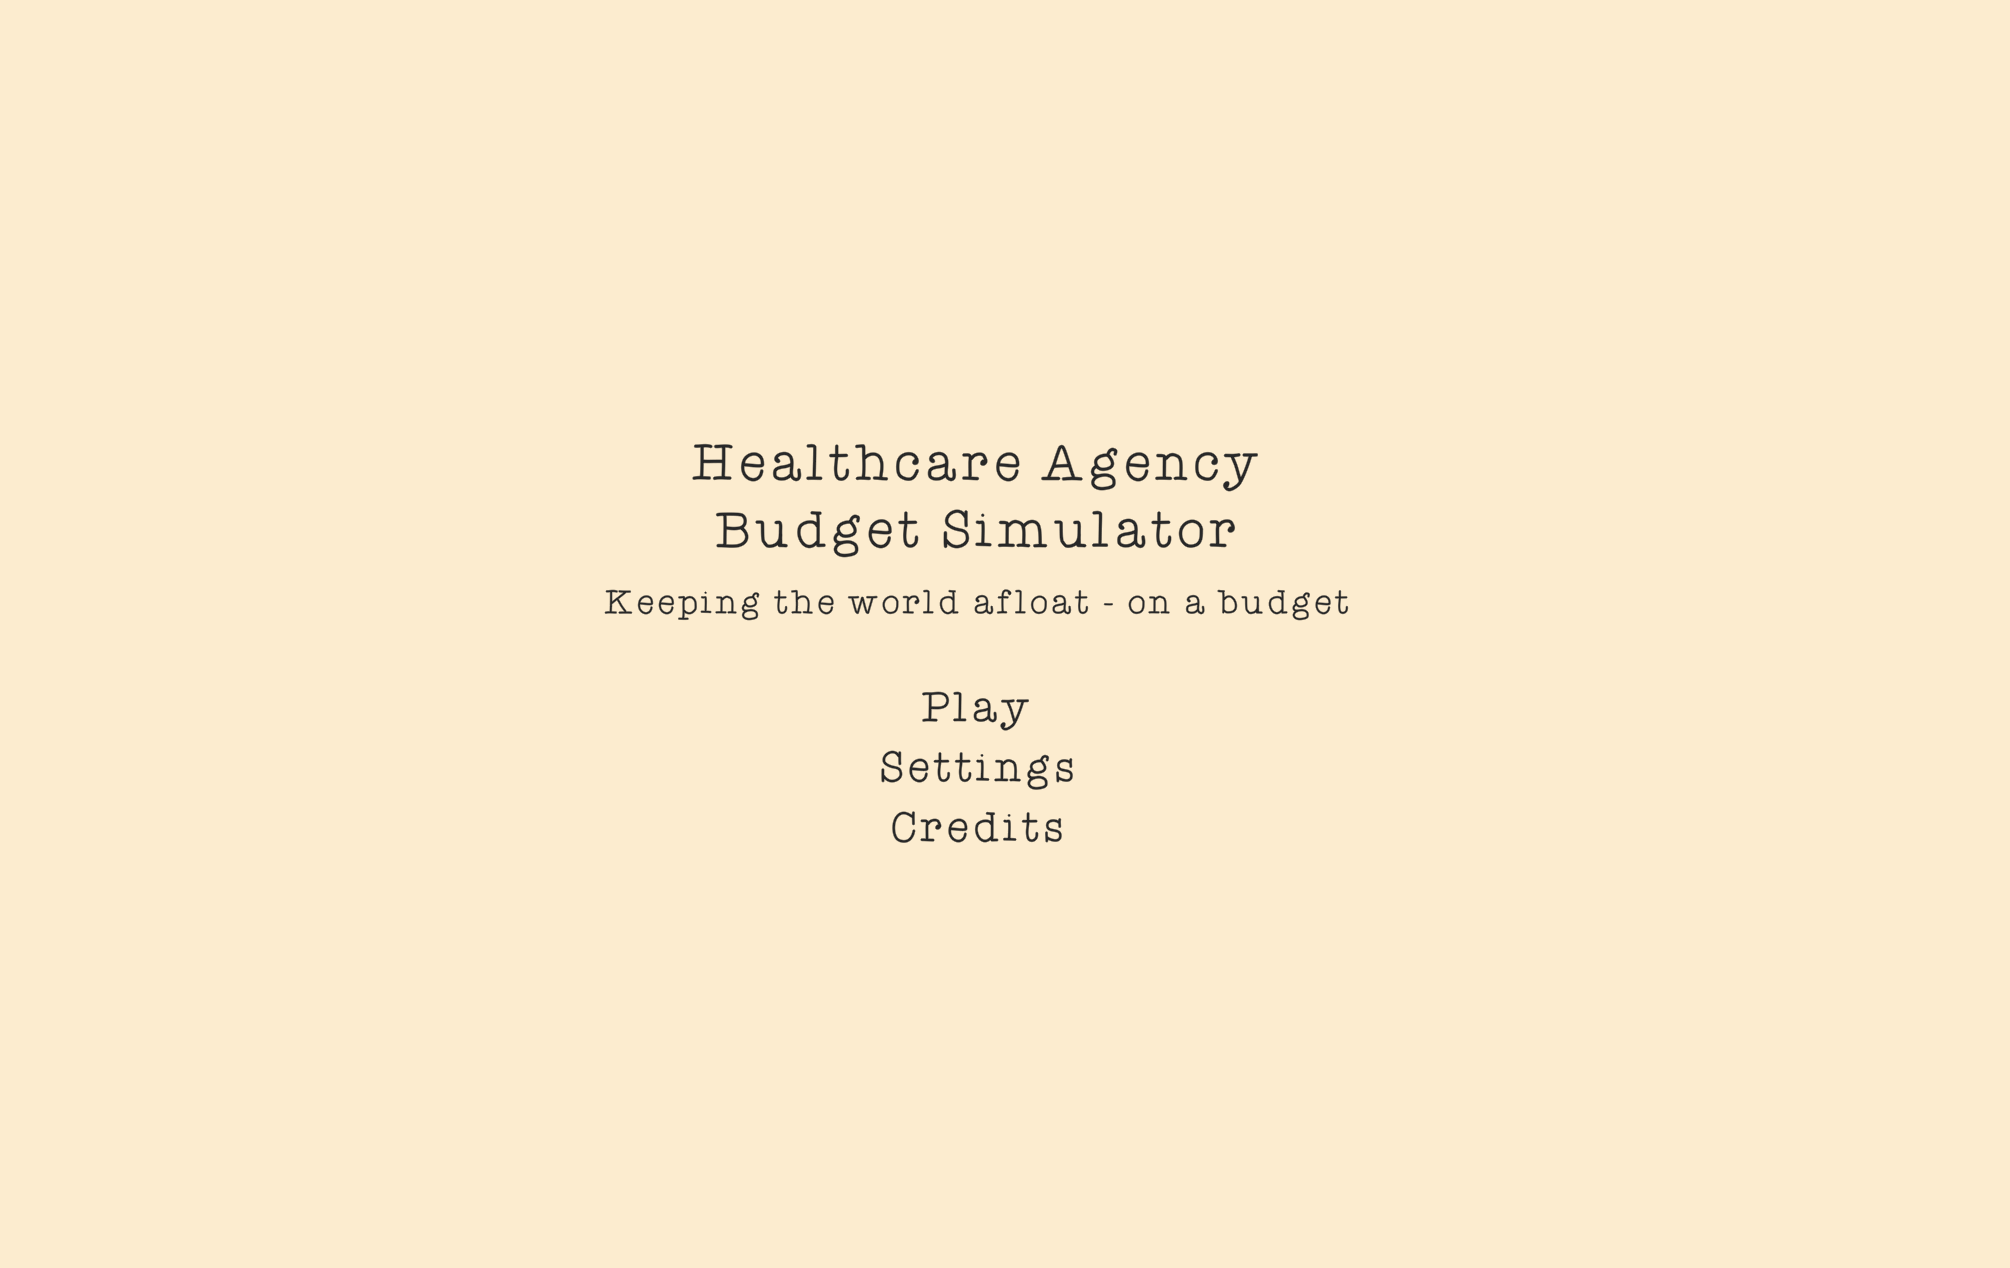 Healthcare Agency Budgeting Simulator